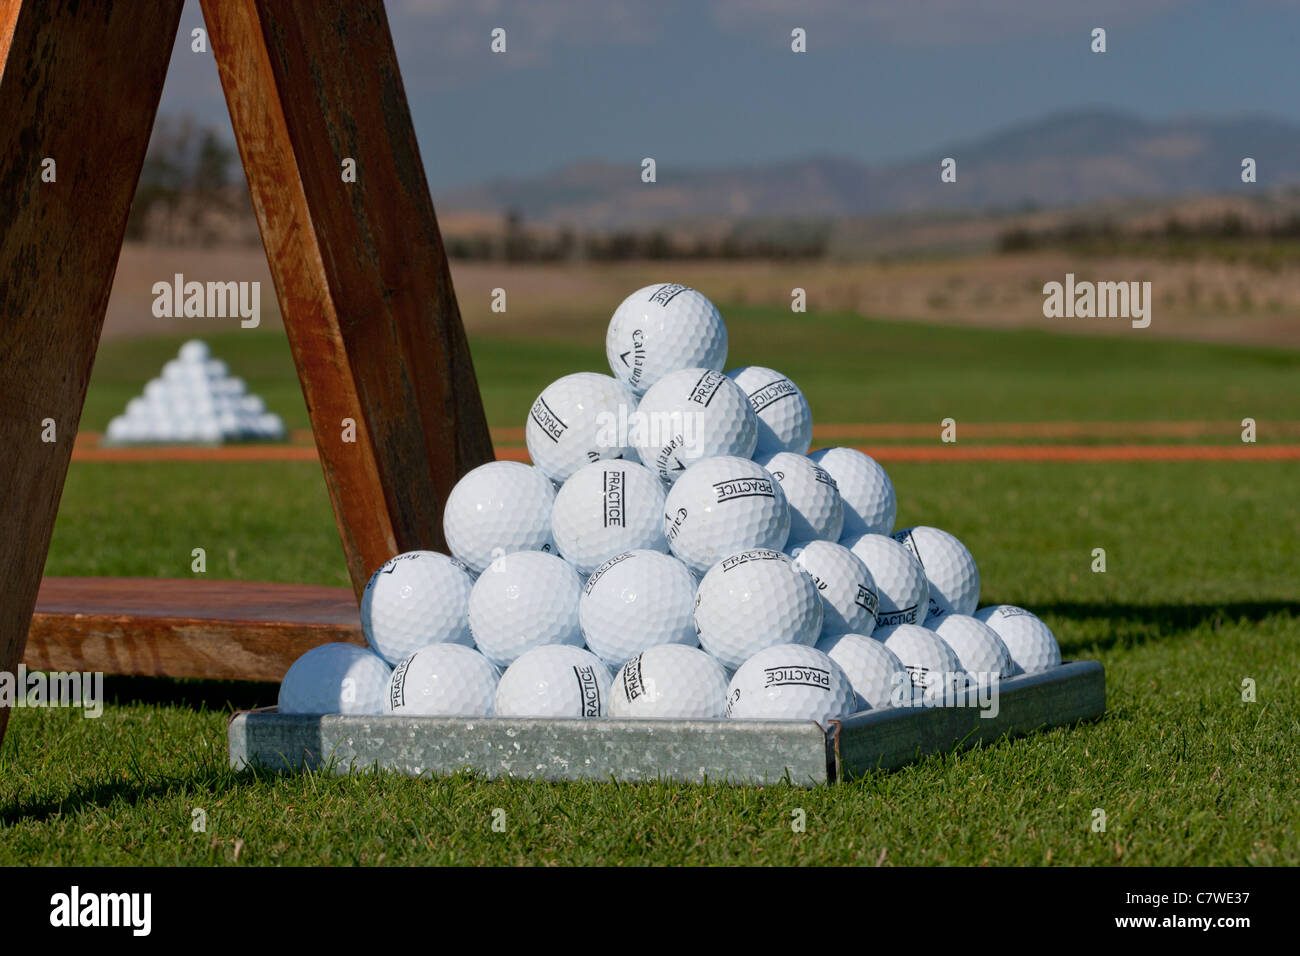 Pyramid of golf balls at a Golf driving practice range Stock Photo